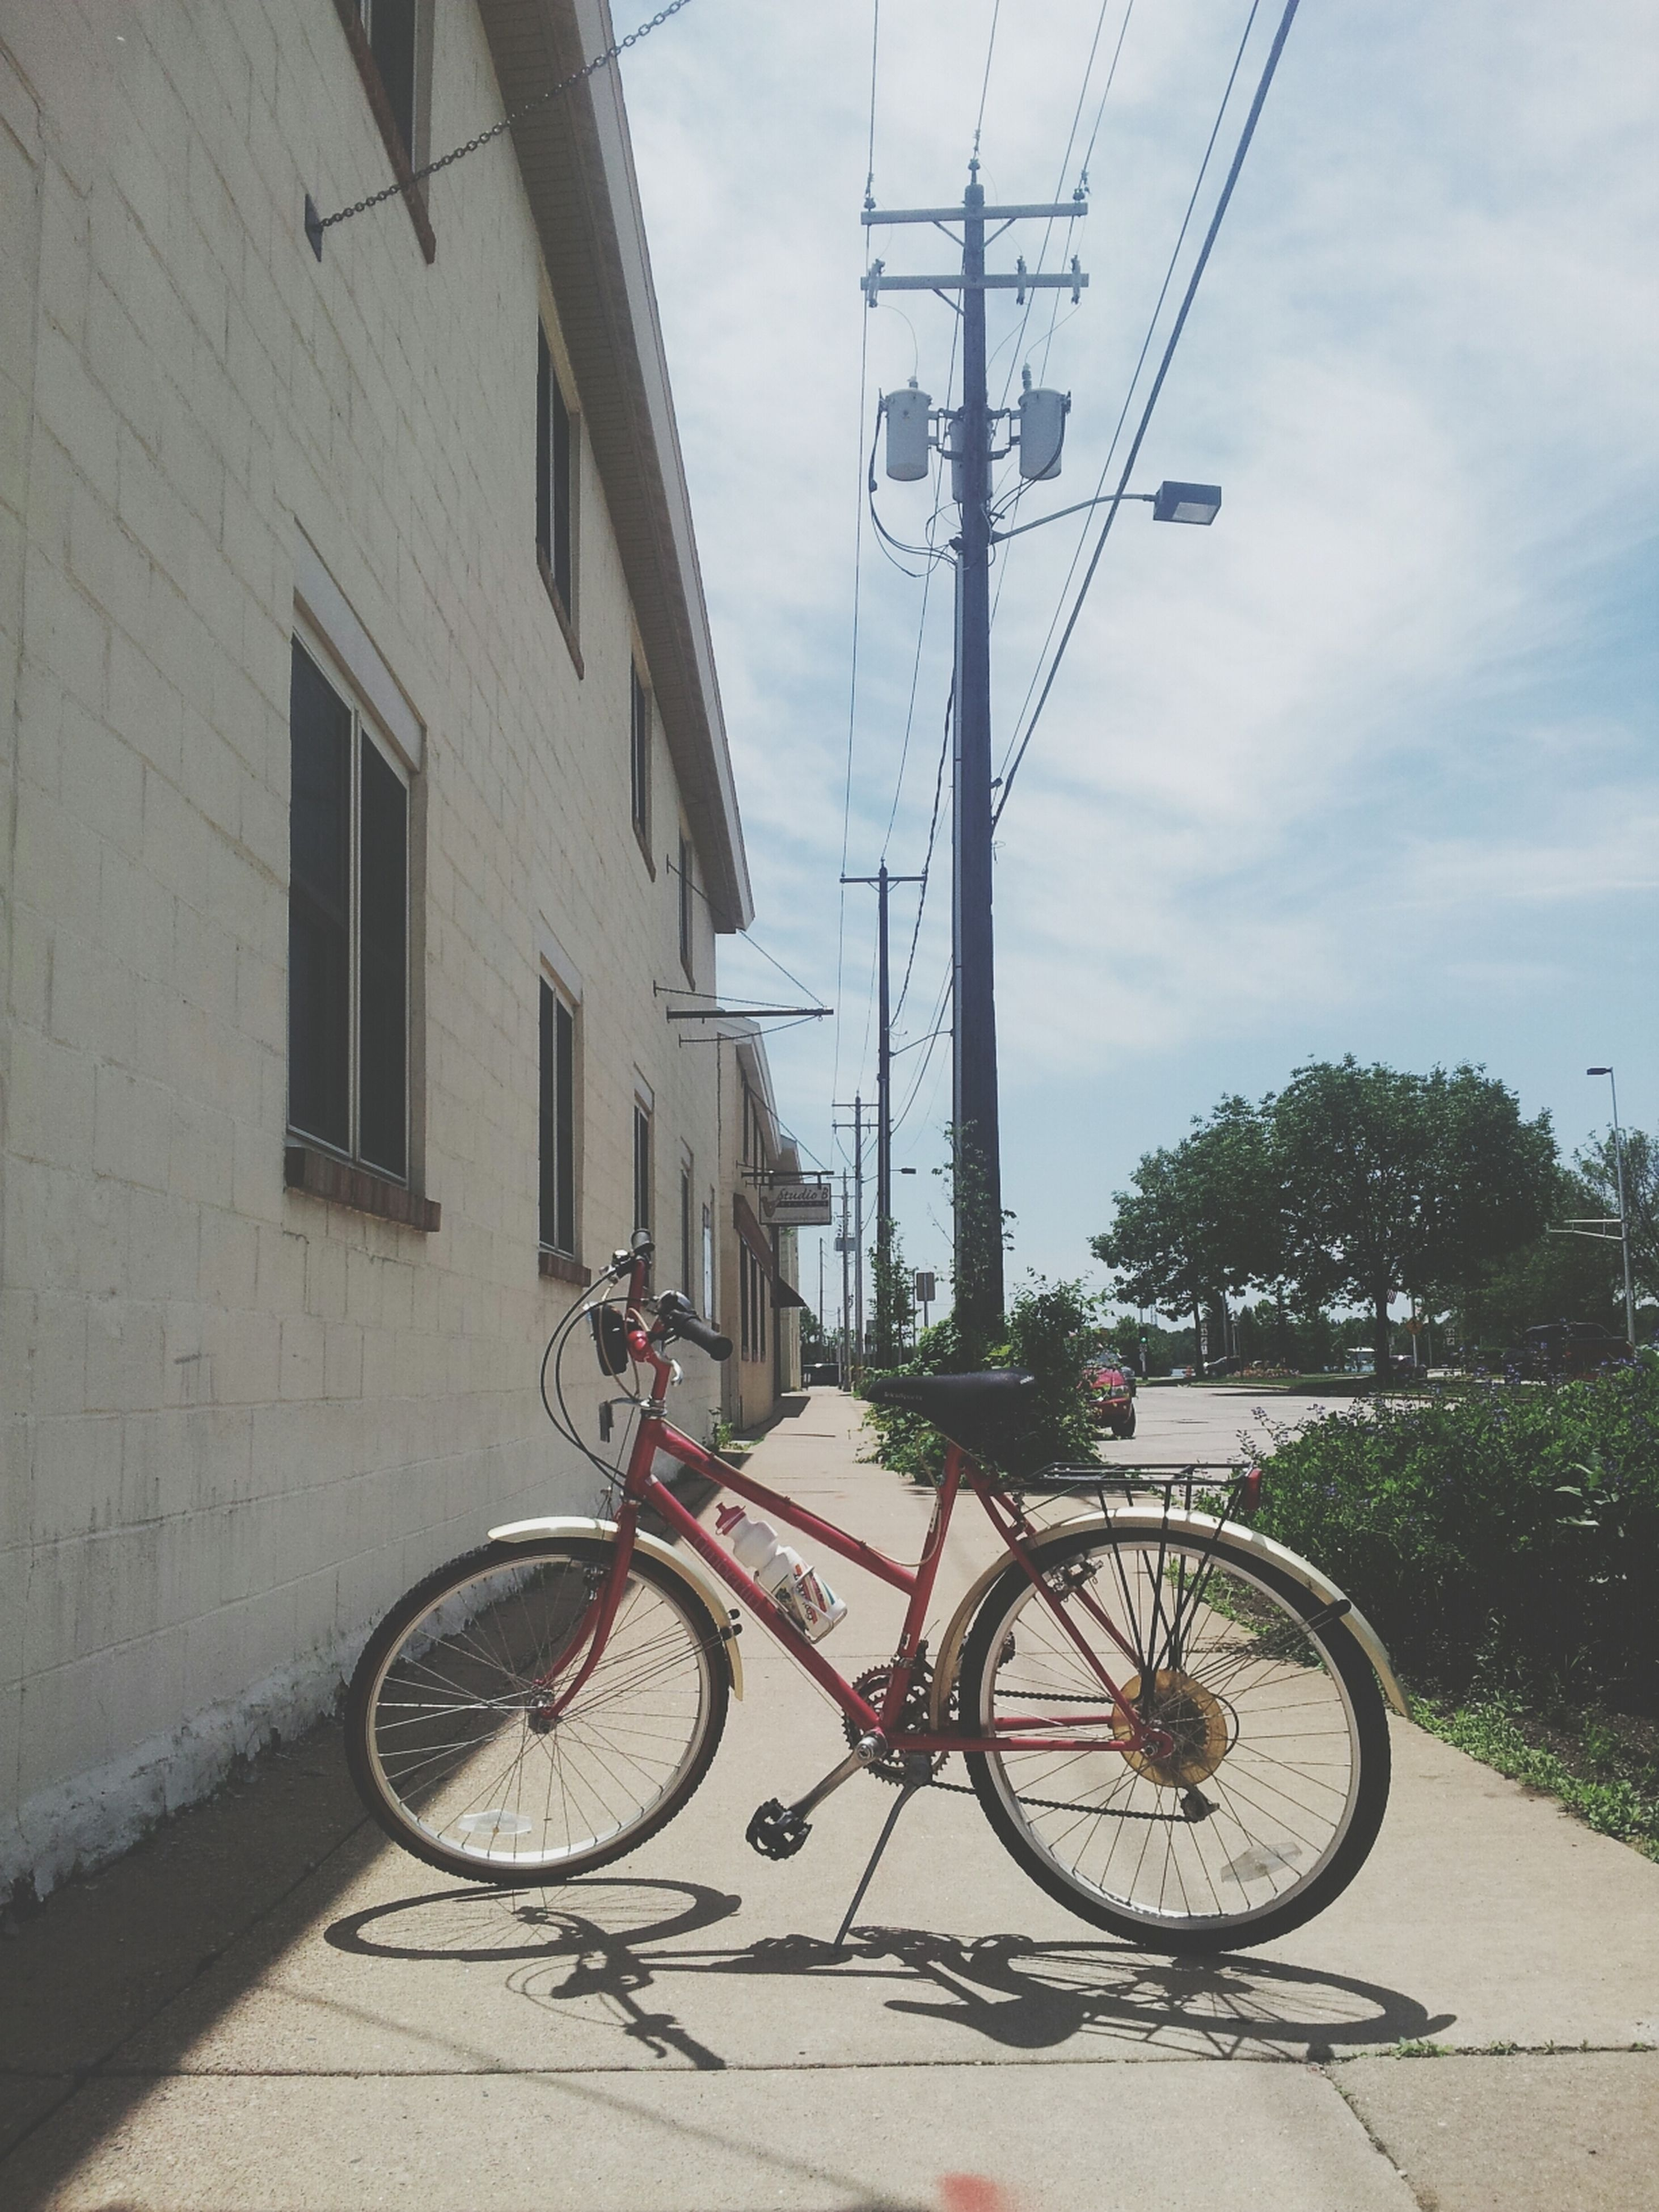 bicycle, transportation, mode of transport, architecture, building exterior, built structure, land vehicle, stationary, parked, power line, sky, parking, street, cable, day, outdoors, road, sunlight, electricity pylon, tree